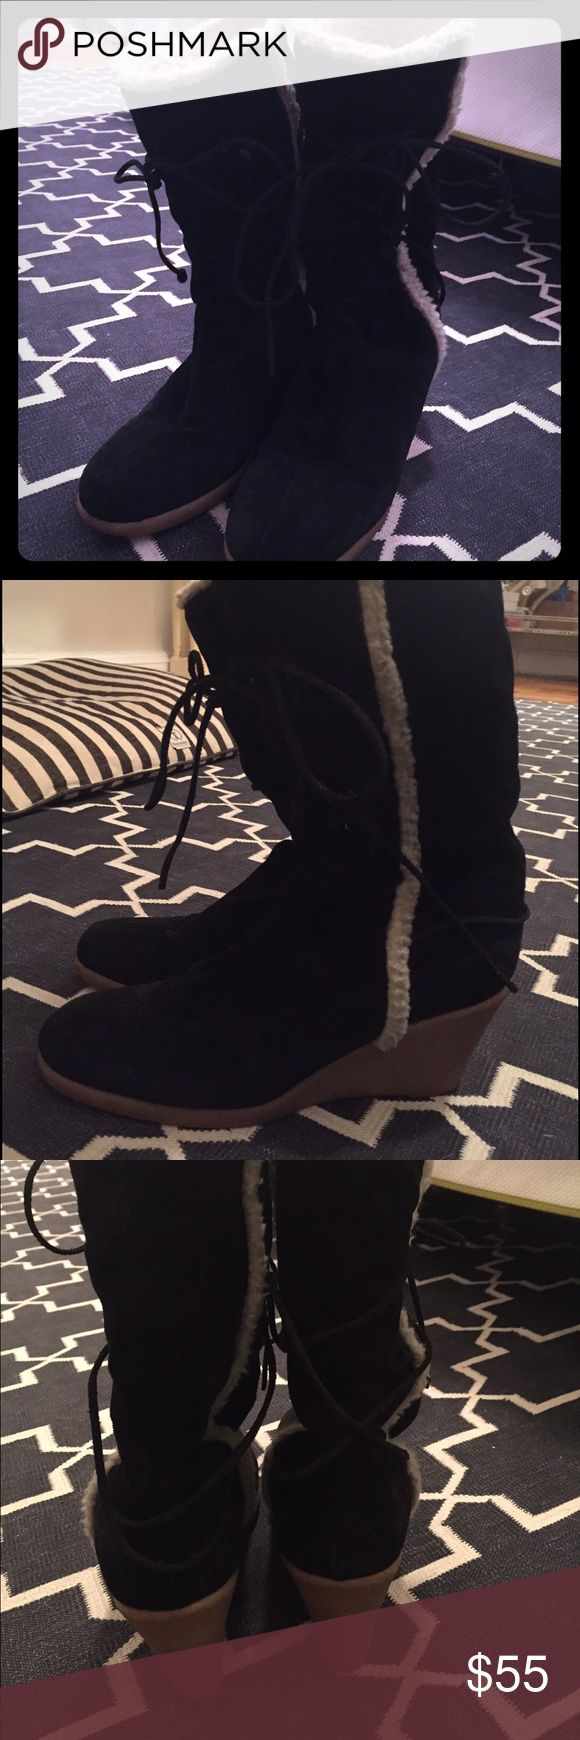 Michael KORS Black Suede Wedge Boots Rubber Sole Ready for Sundance!  These boots are stylish, give great height and super comfortable with a rubber wedge sole.  size 10 black suede.  Authenticity guaranteed.  Purchased at Intermix NYC. KORS Michael Kors Shoes Heeled Boots